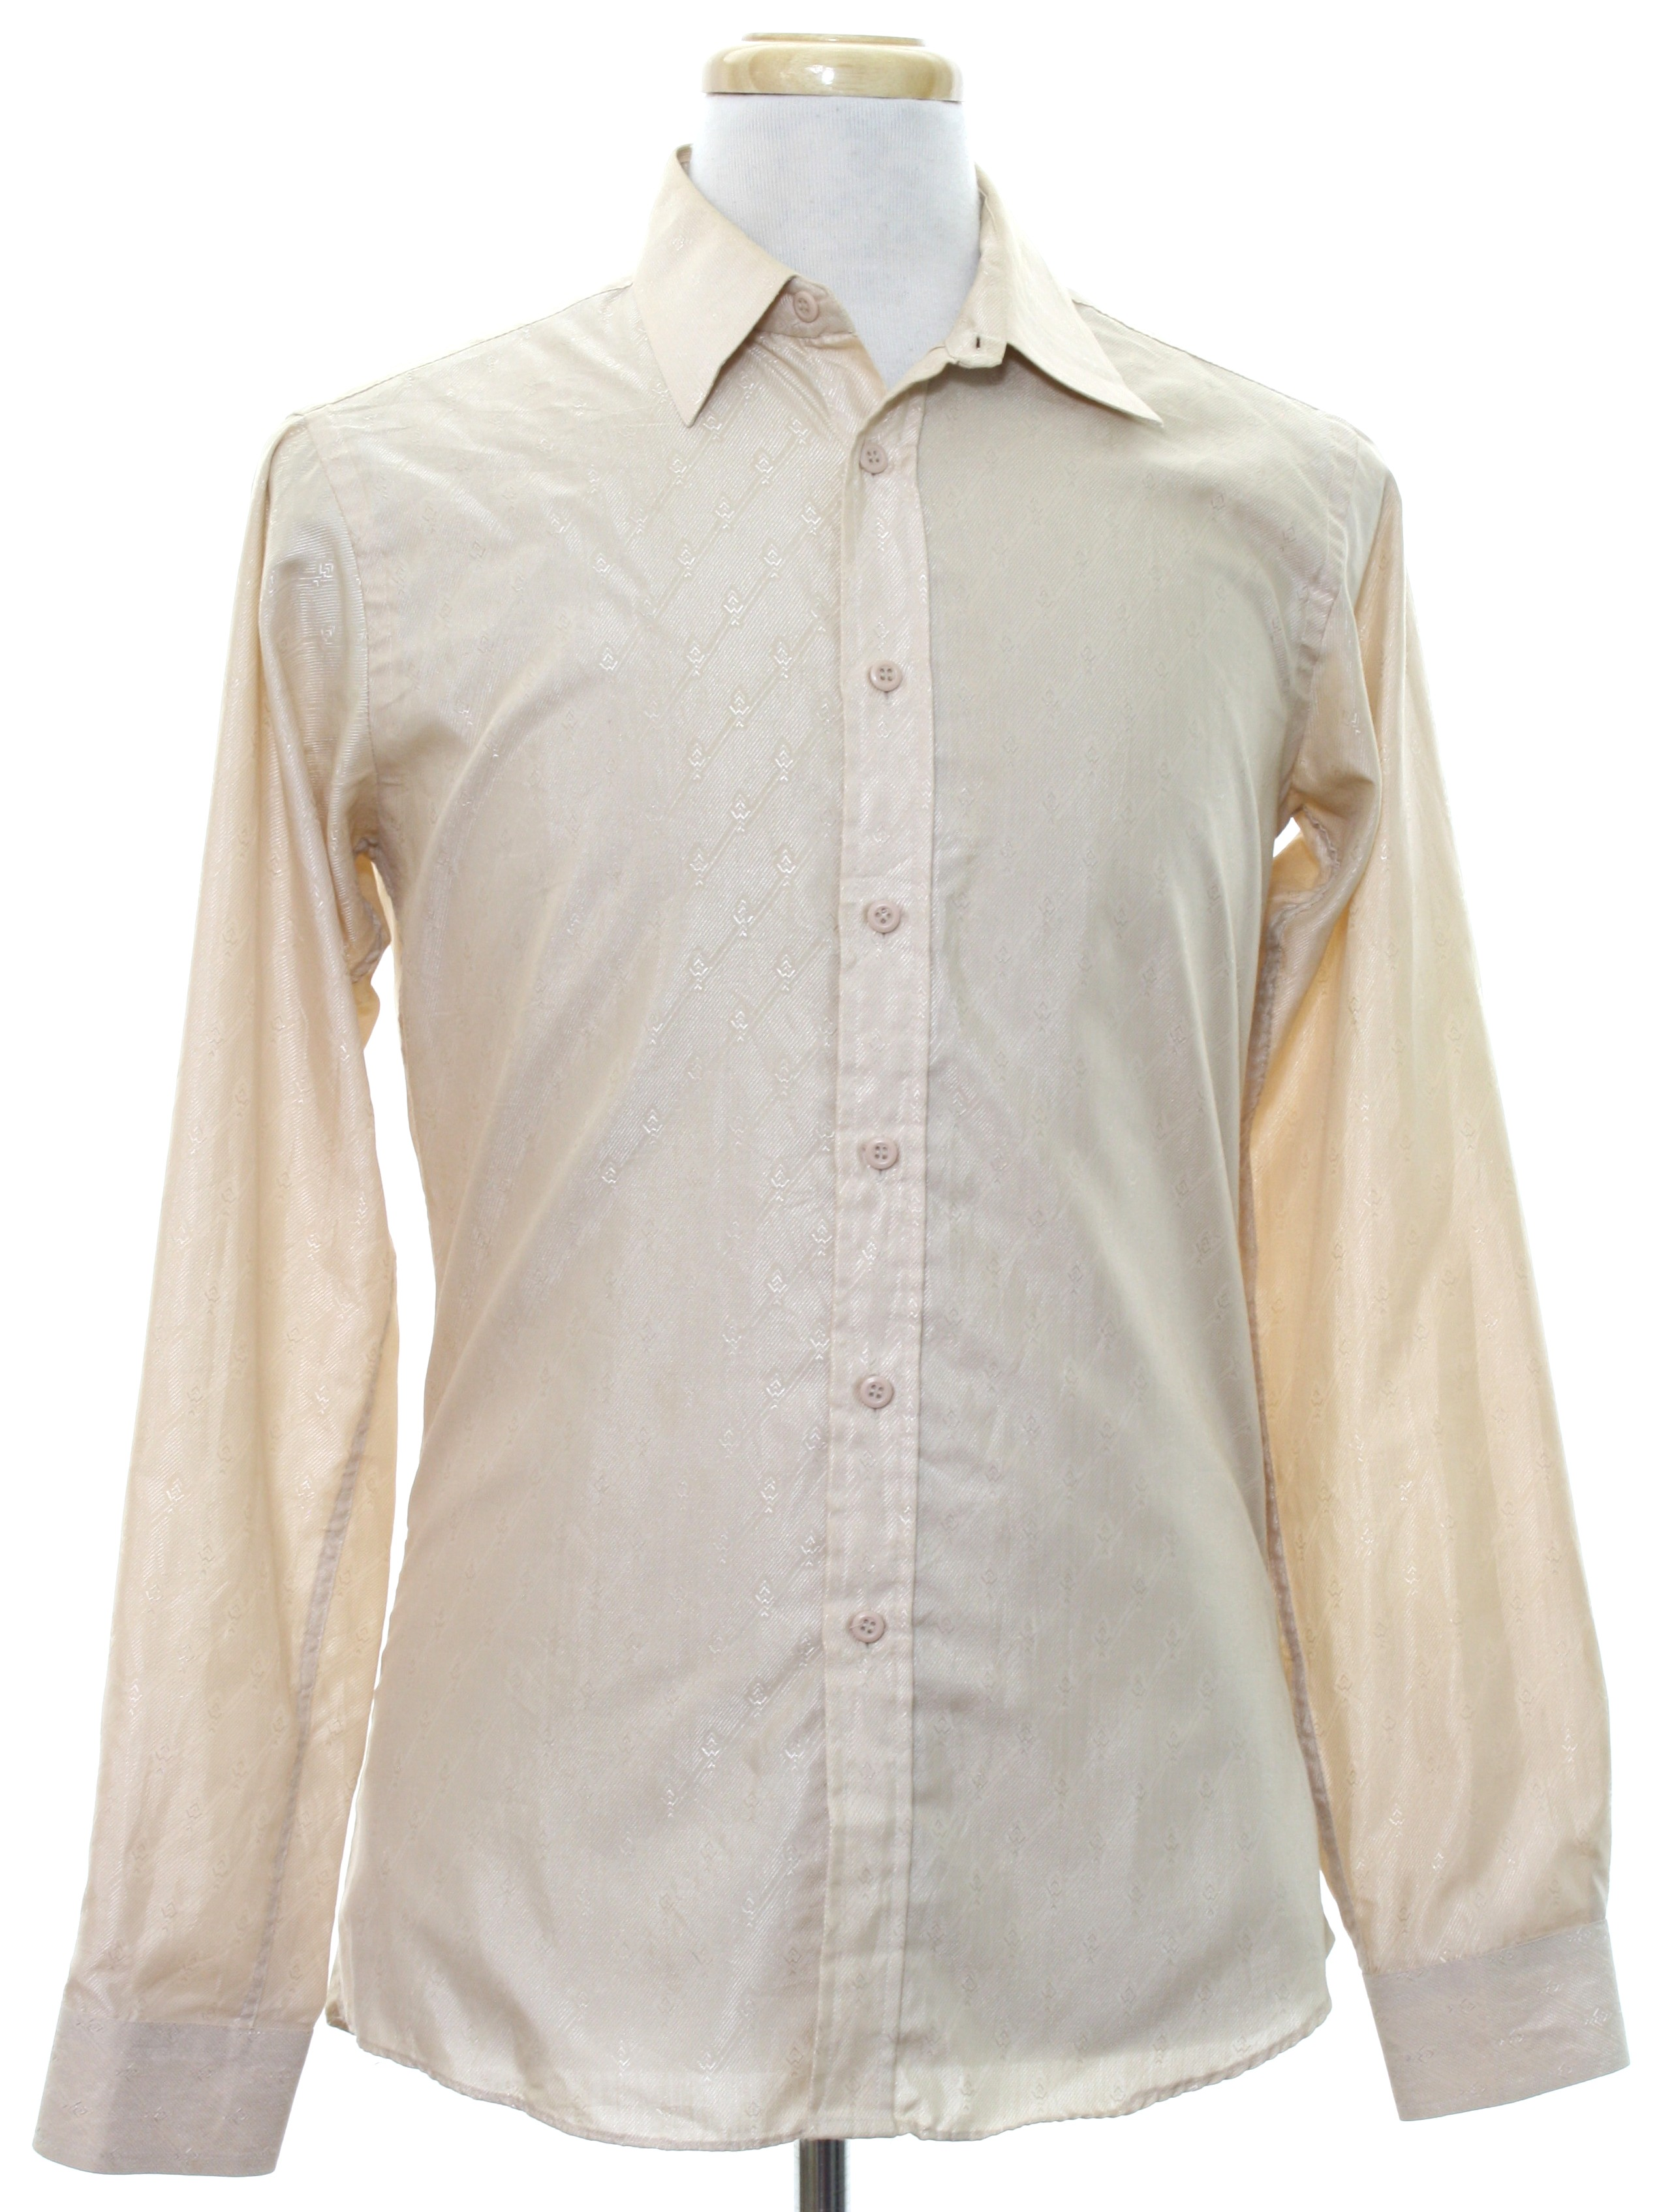 1980 S Retro Shirt 80s Chams Mens Champagne Polyester